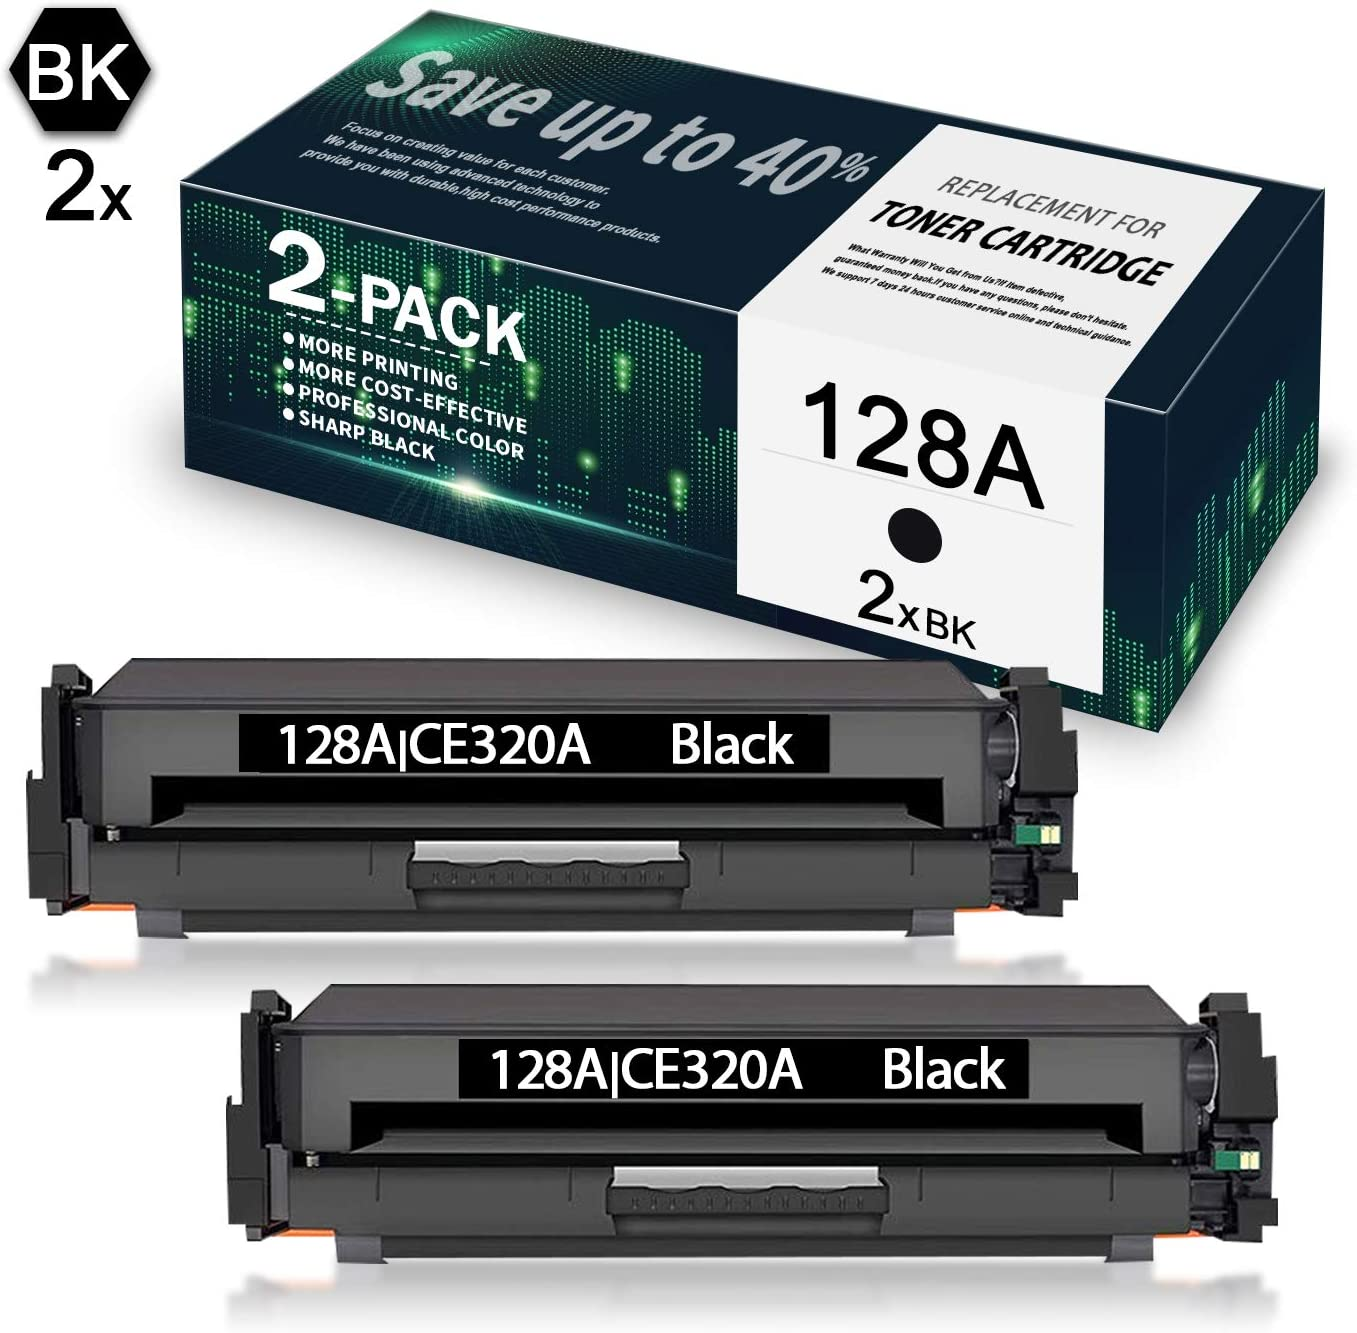 2-Pack Black CE320A Compatible Remanufactured Toner Cartridge Replacement for HP Laserjet Pro CP1525n CP1525nw MFP CM1415fn CM1415fnw Printer,Sold by SinaToner. 128A